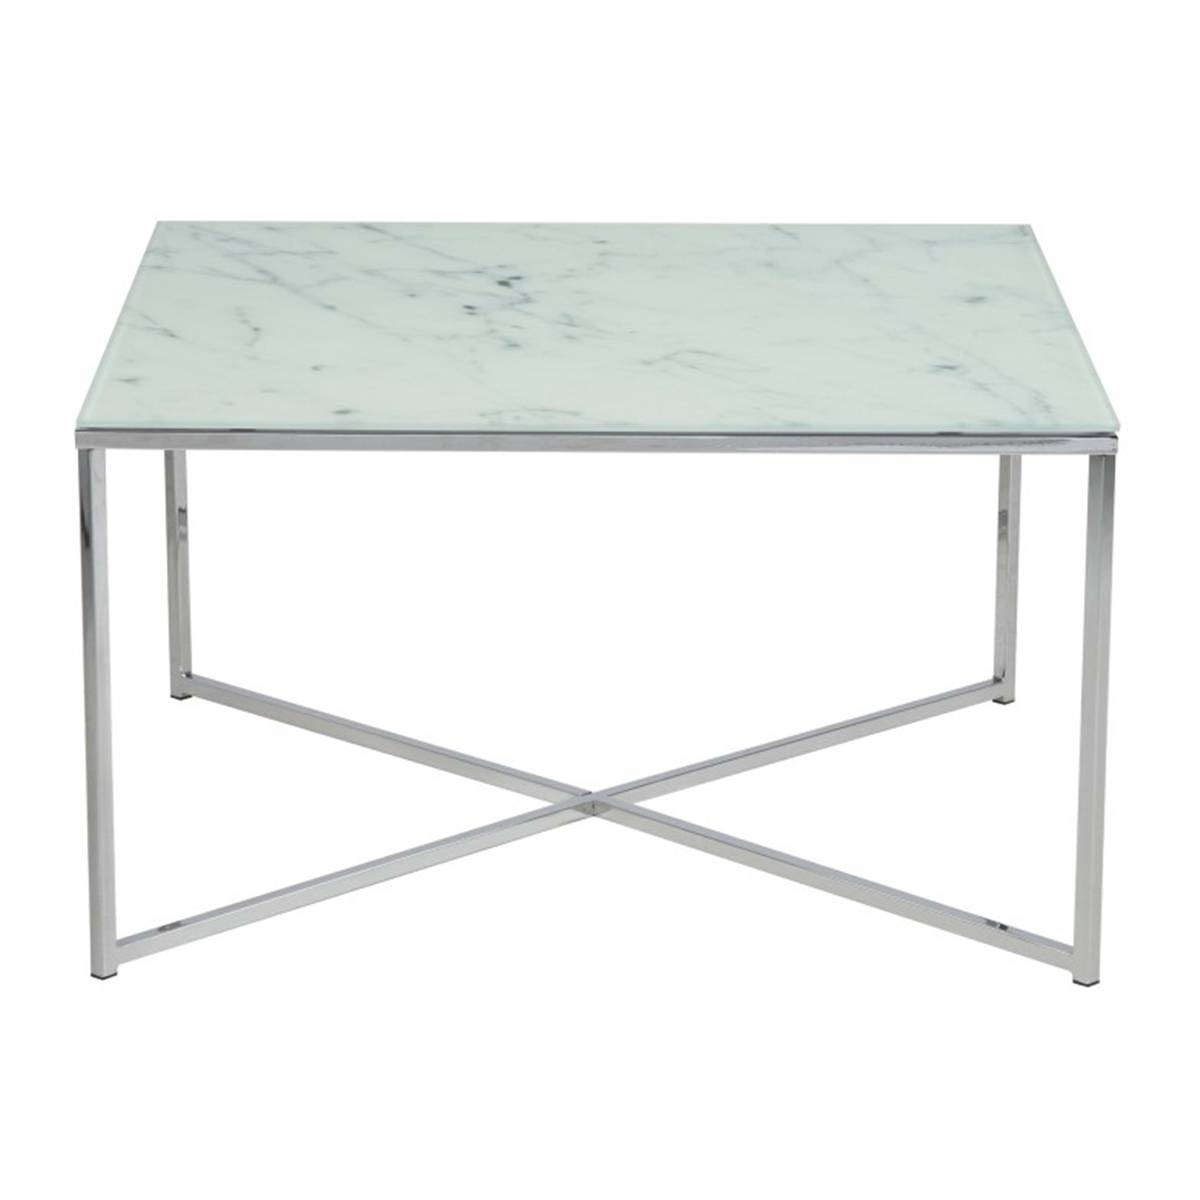 Alisma Marble Style Glass Coffee Table | Coffee Tables From Fads within Marble and Glass Coffee Table (Image 3 of 15)